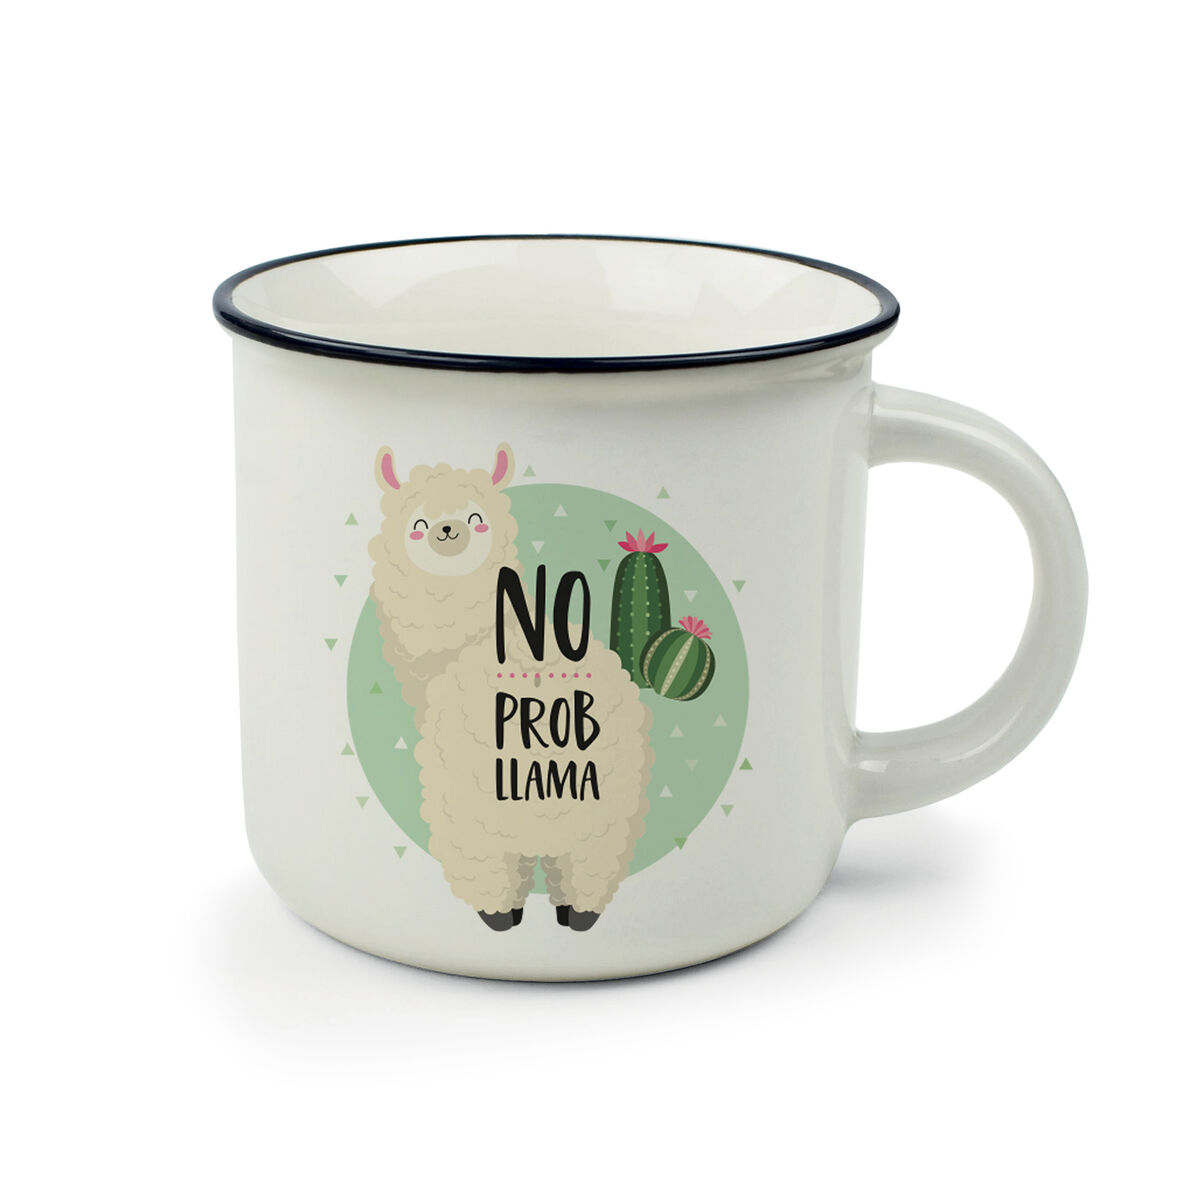 Cup-Puccino - Porcelain Mugs, , zoo